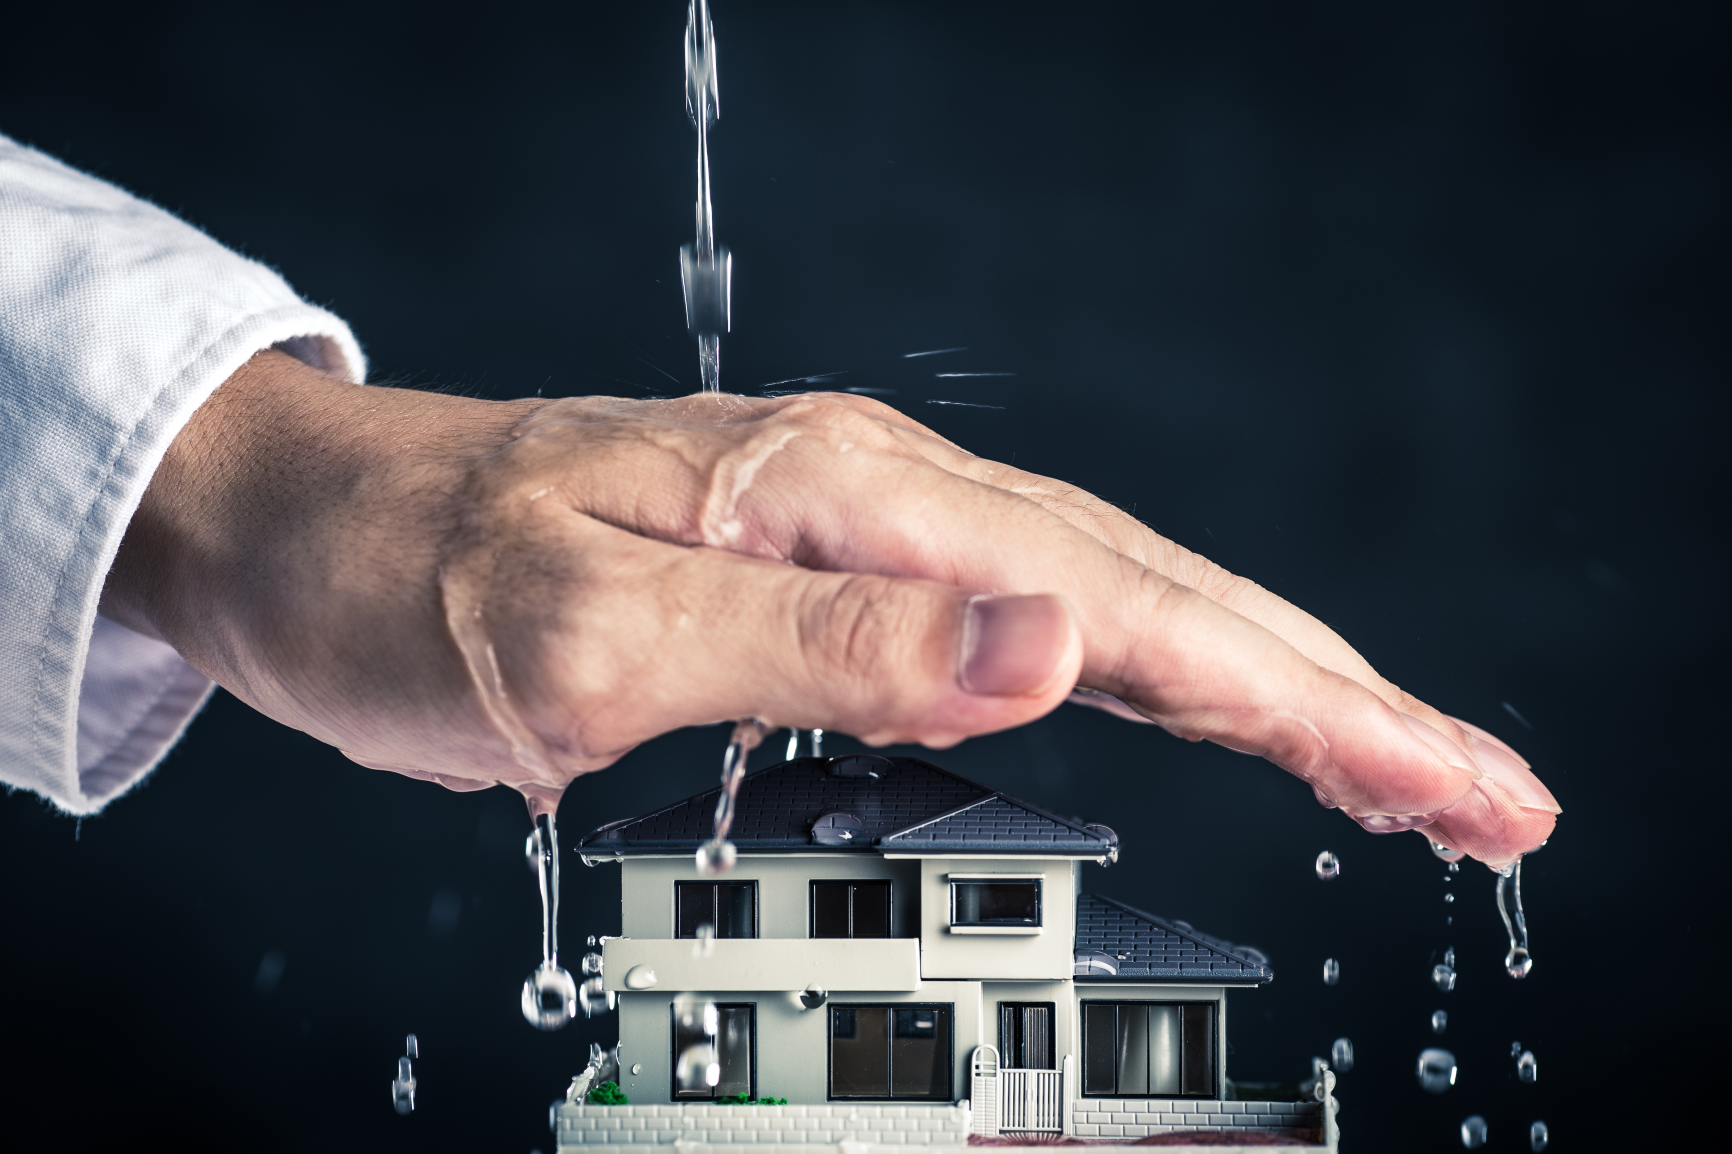 Protecting Property From Water Damage